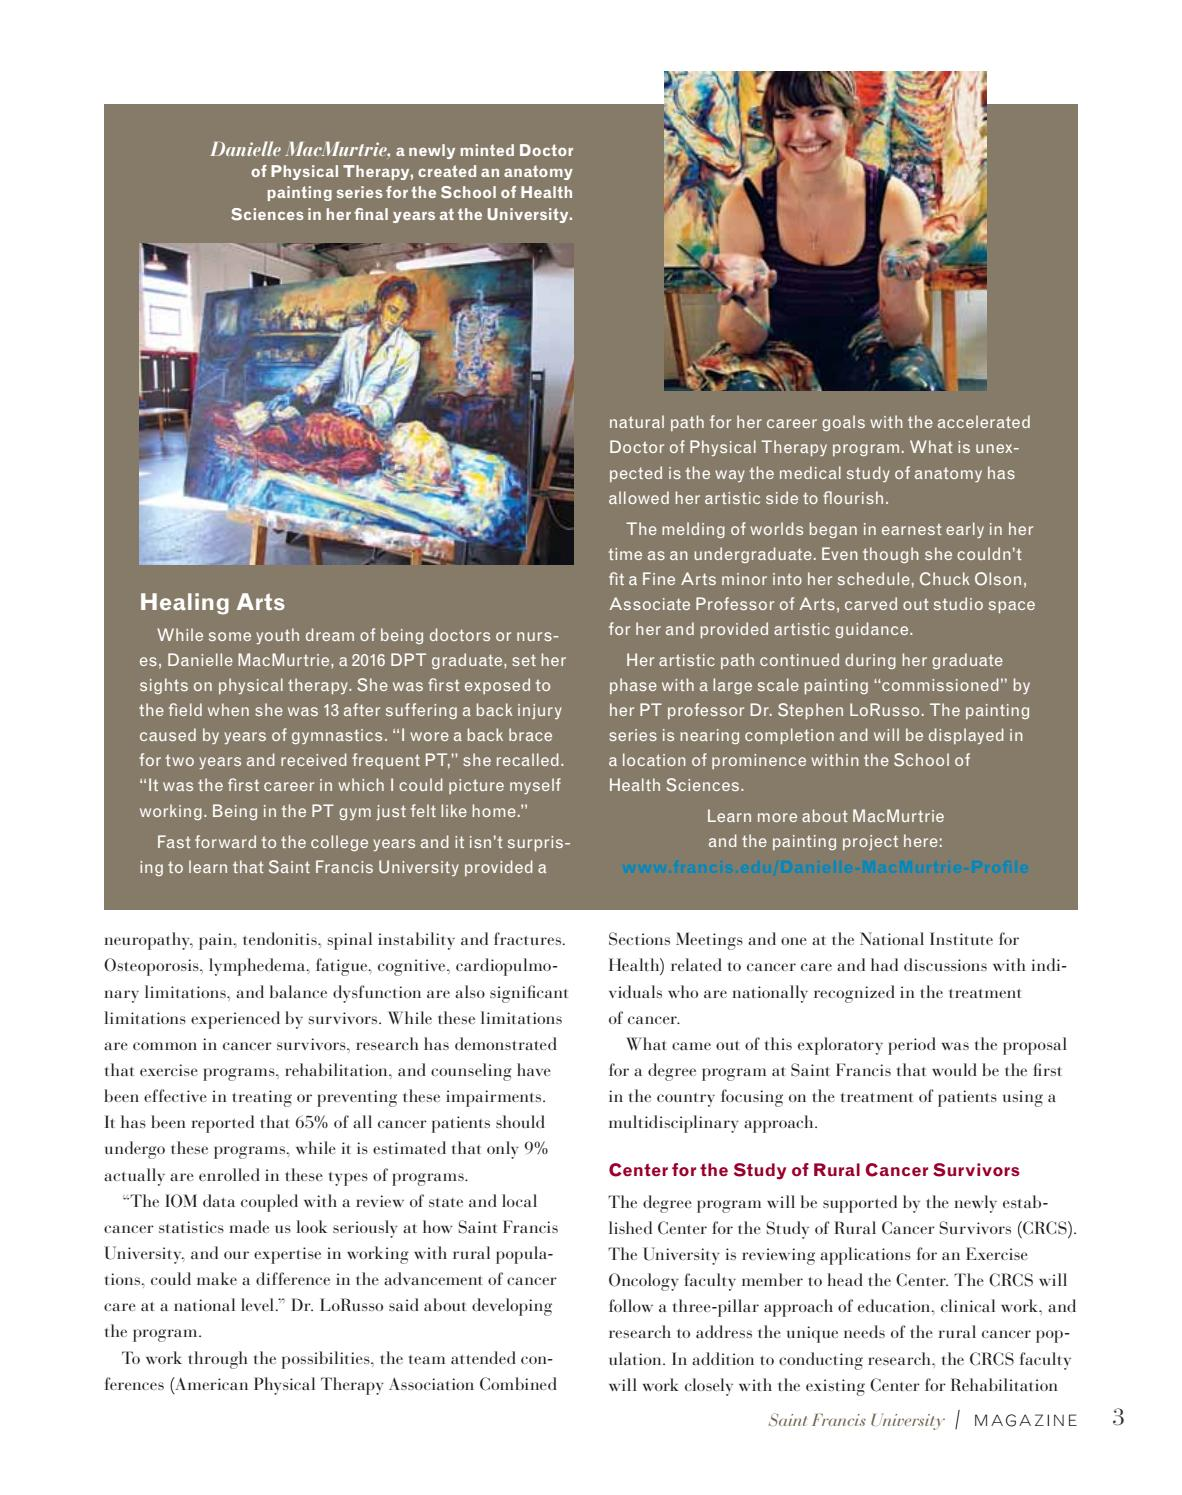 Advancement physical therapy - Saint Francis University Magazine Spring Summer 2016 By Saint Francis University Issuu